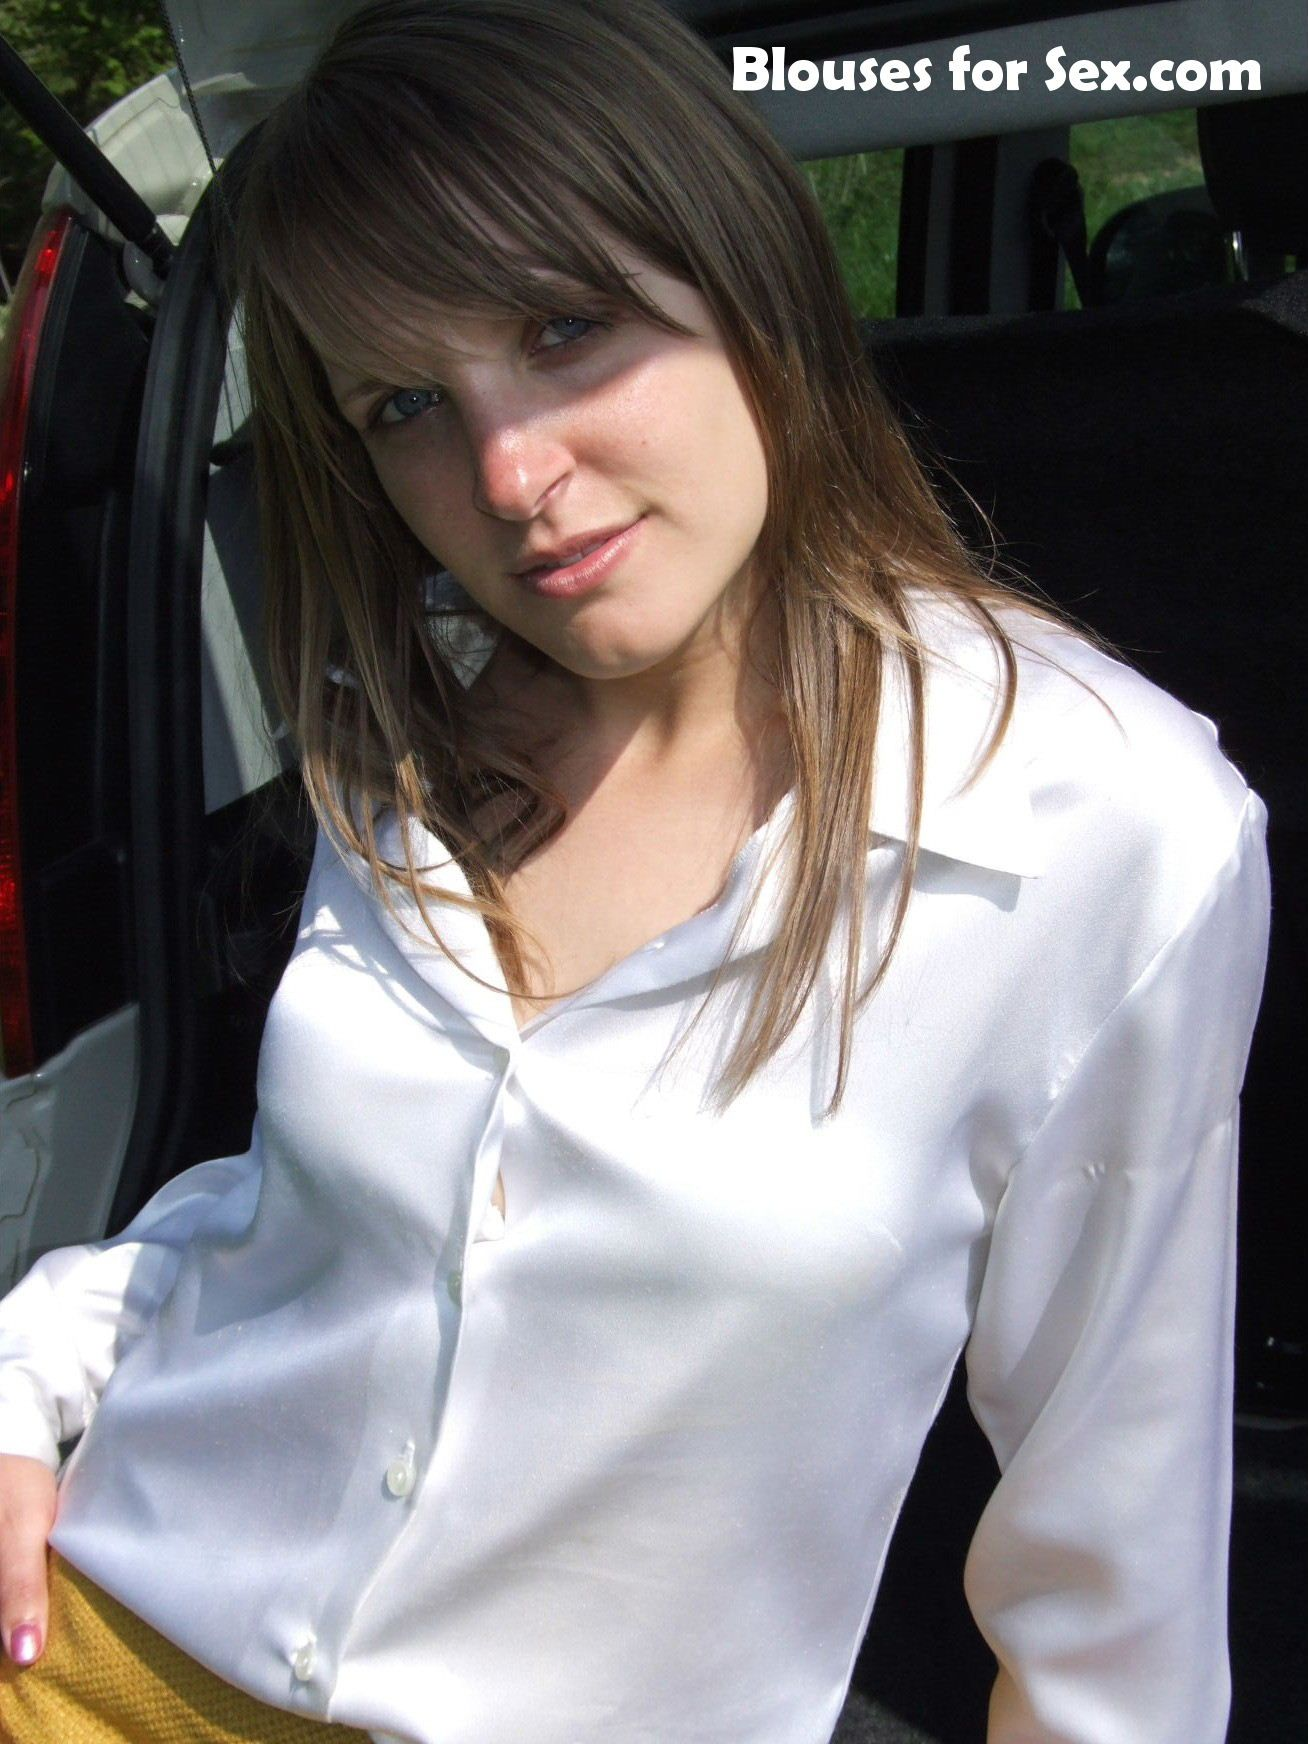 Sapphire In White Satin At Www Blousesforsex Com White Blouses